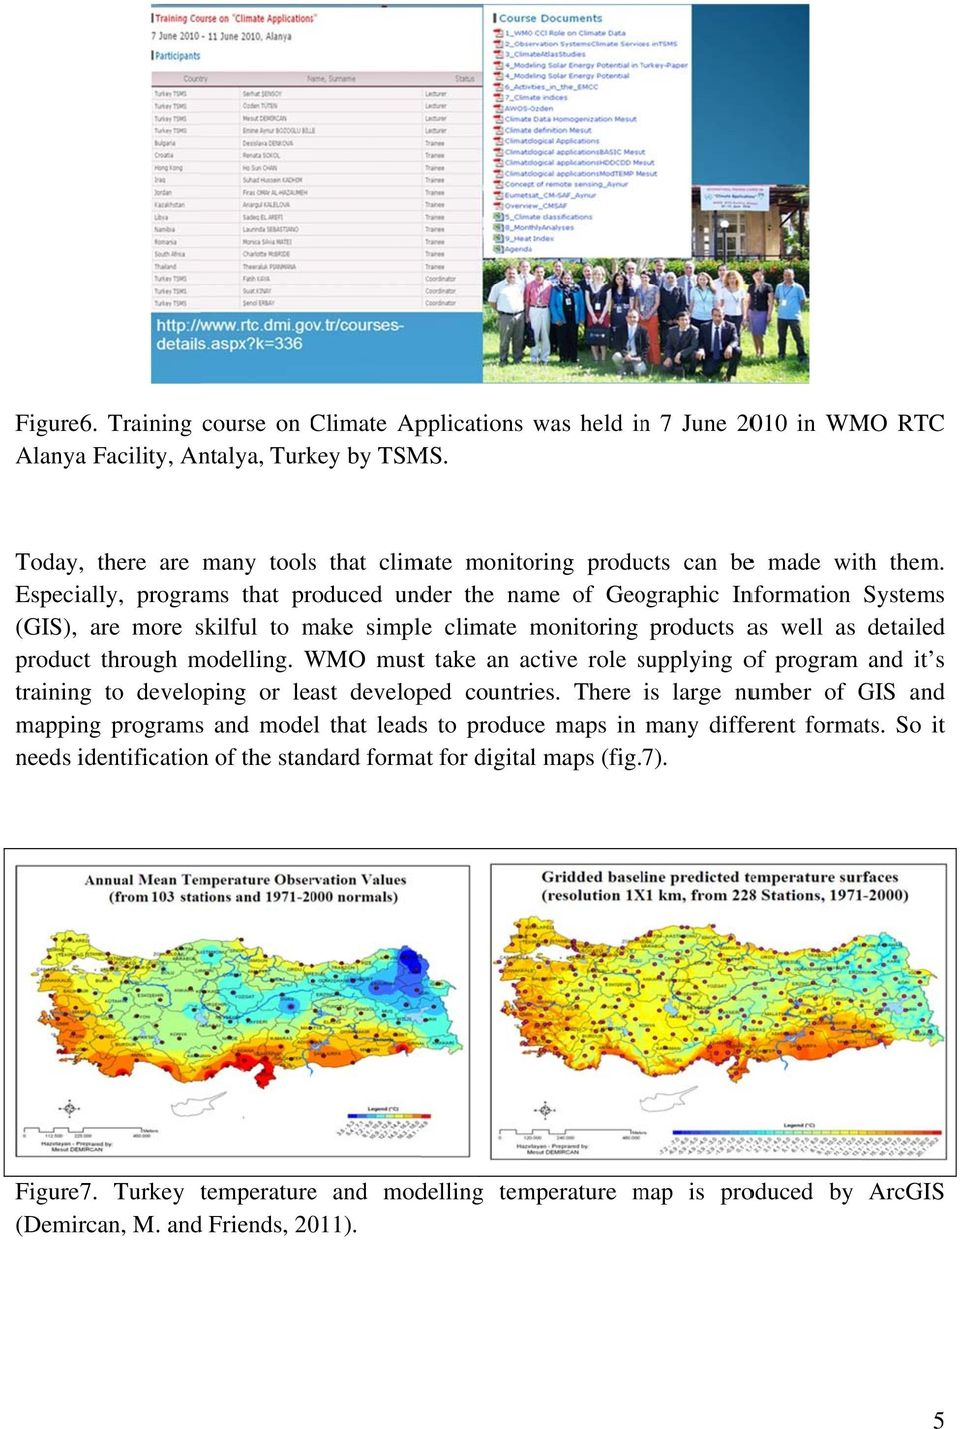 Especially, programs that produced under the name of Geographic Information Systems (GIS), are more skilful to make simple climate monitoring products as well as detailed product through modelling.